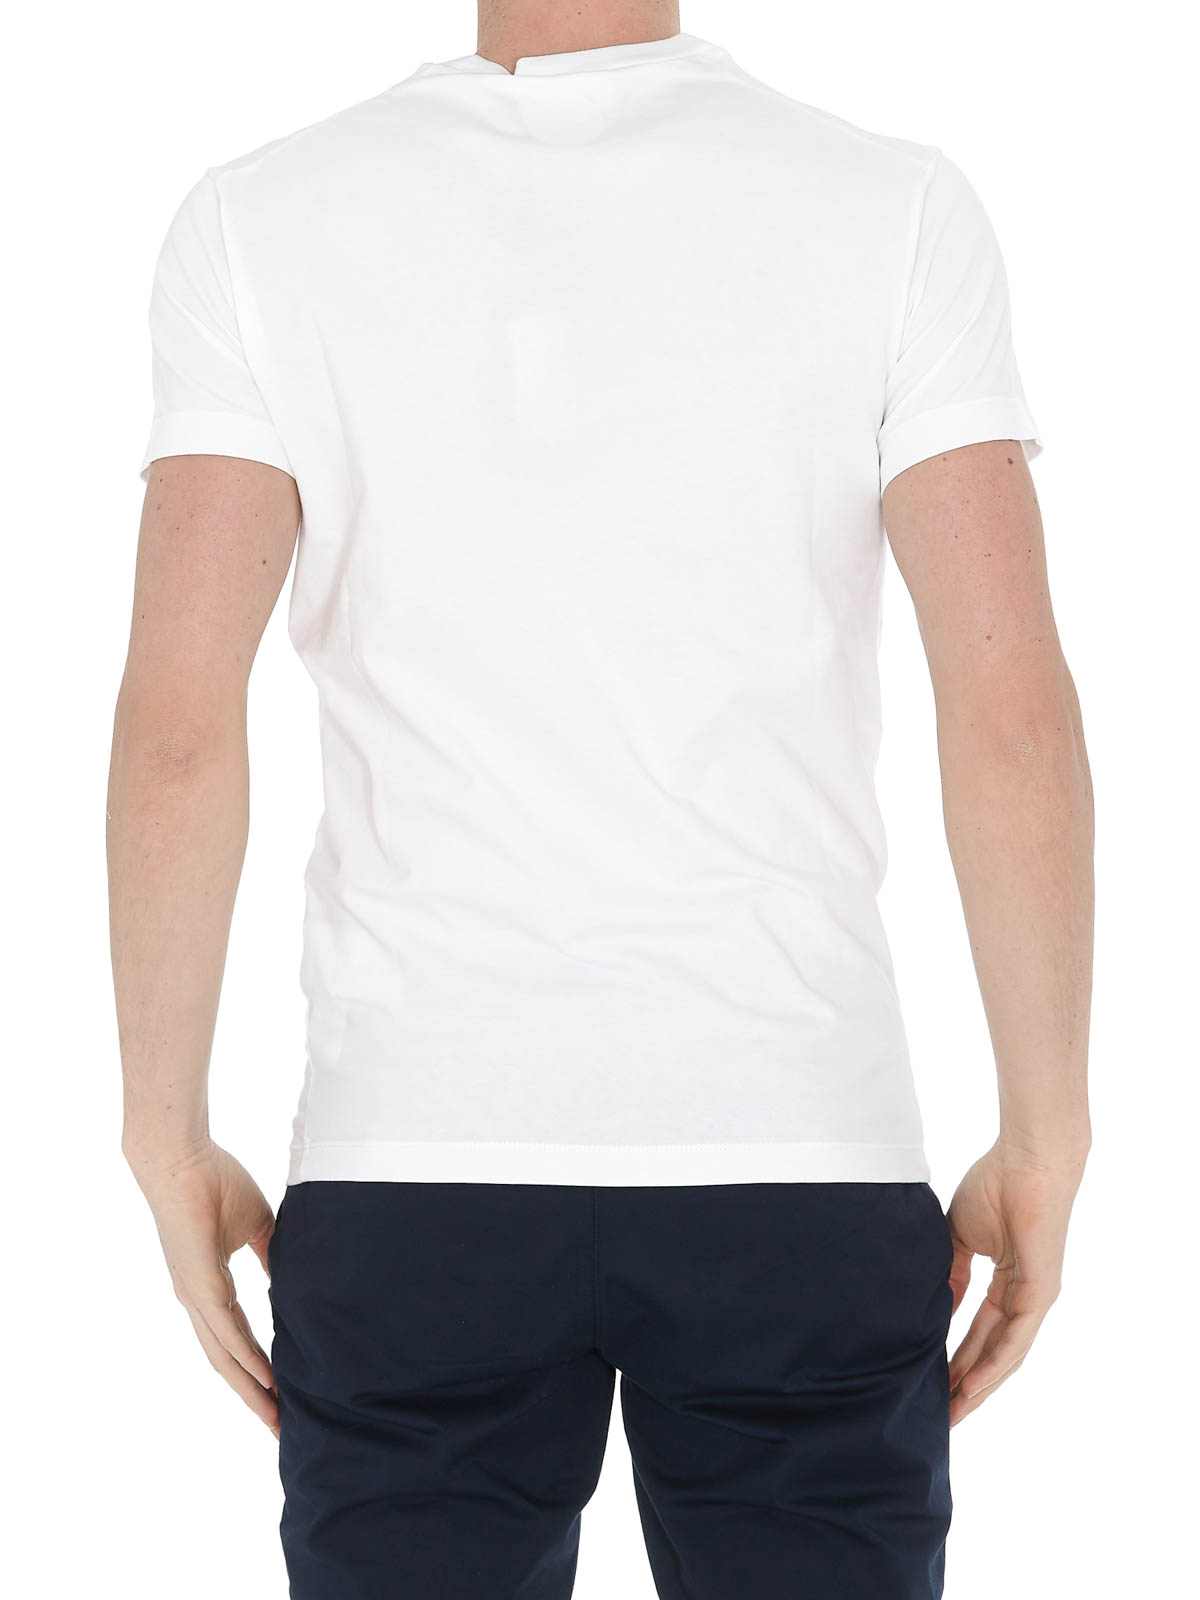 Details about  /Dsquared2 Mens Vicious Bros T-Shirt Round Neck Short Sleeves Casual Tee Top